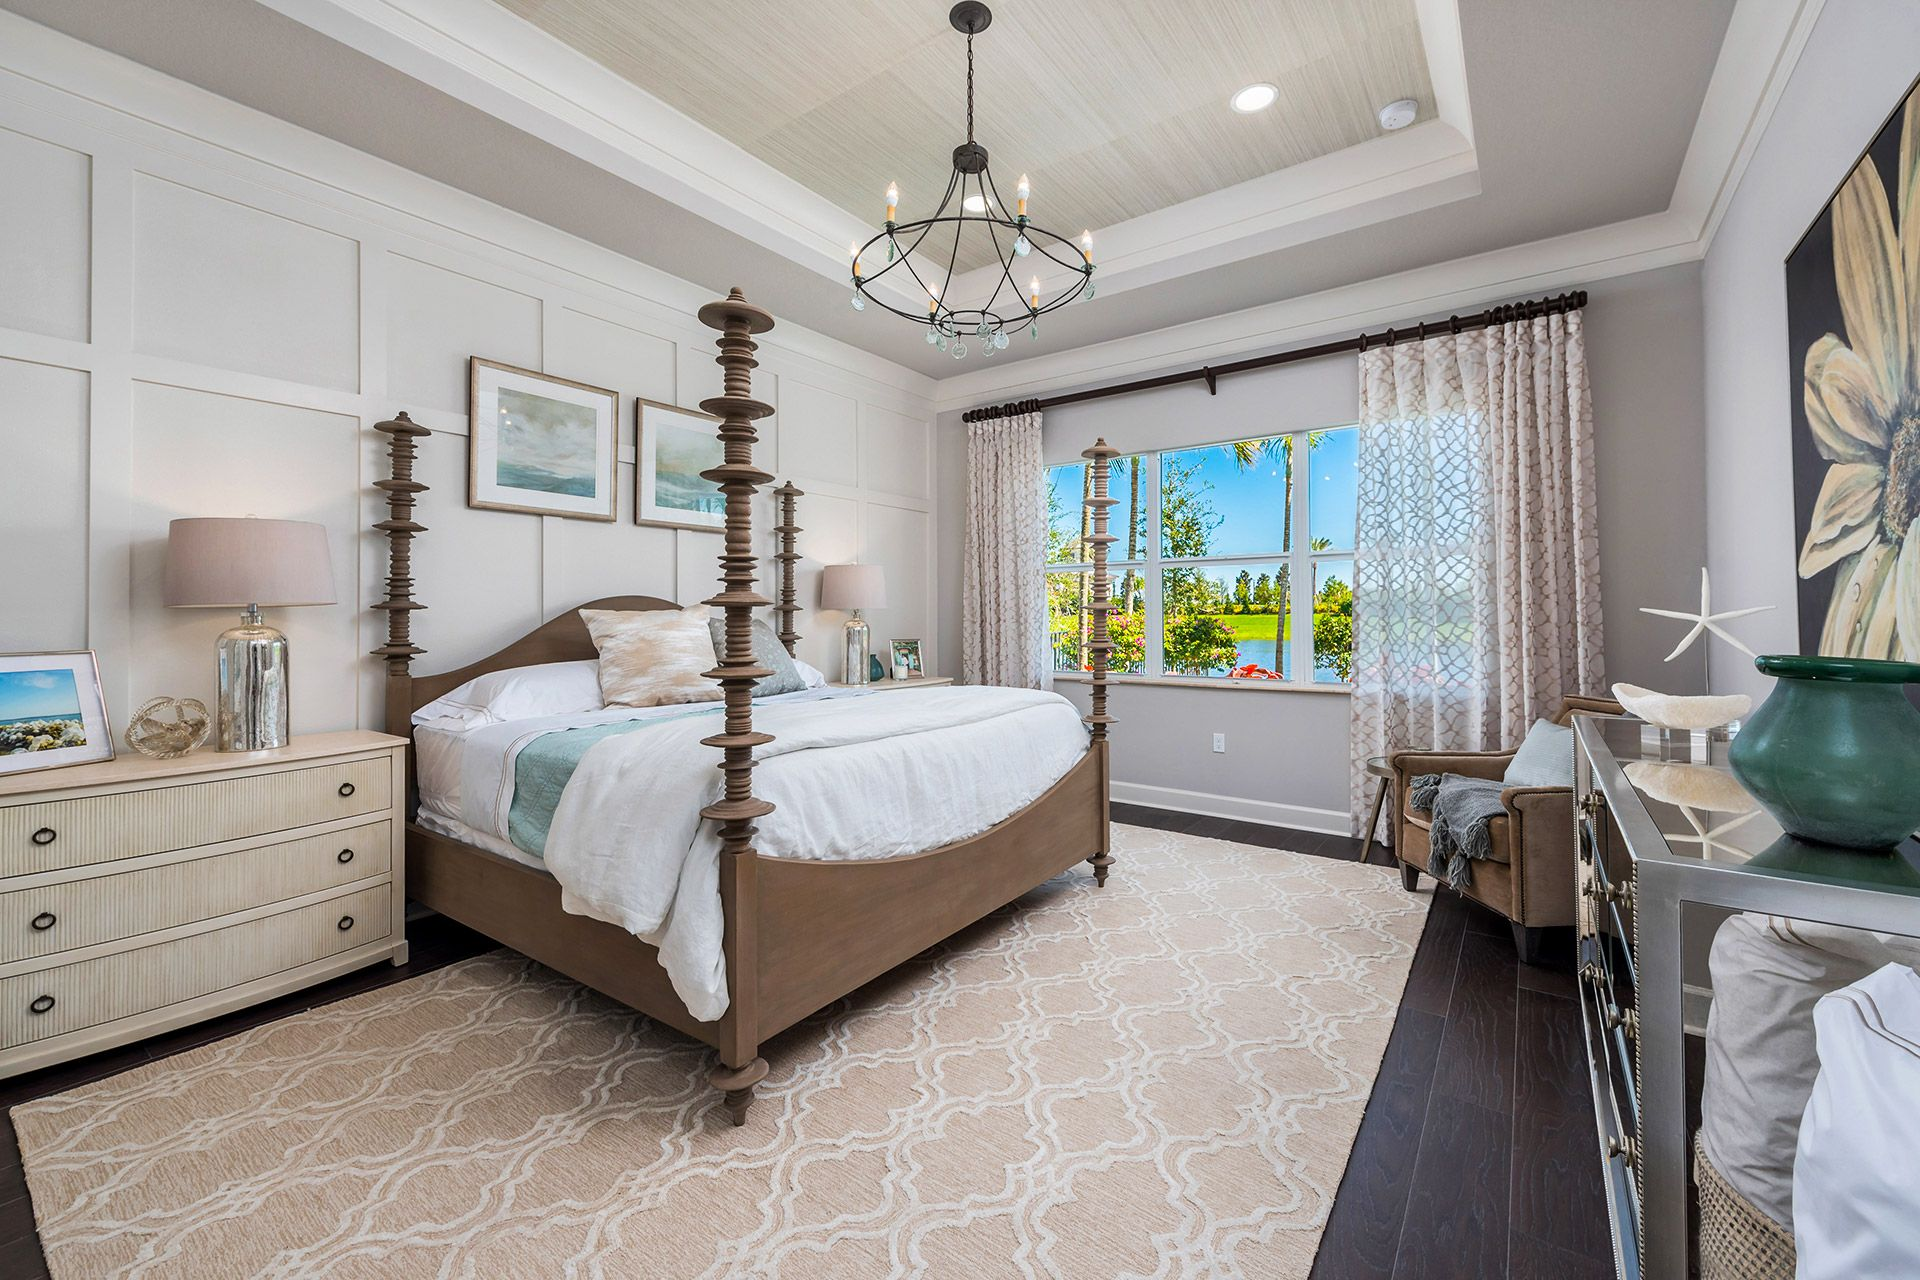 Bedroom featured in the Alexandra Grande By GL Homes in Martin-St. Lucie-Okeechobee Counties, FL